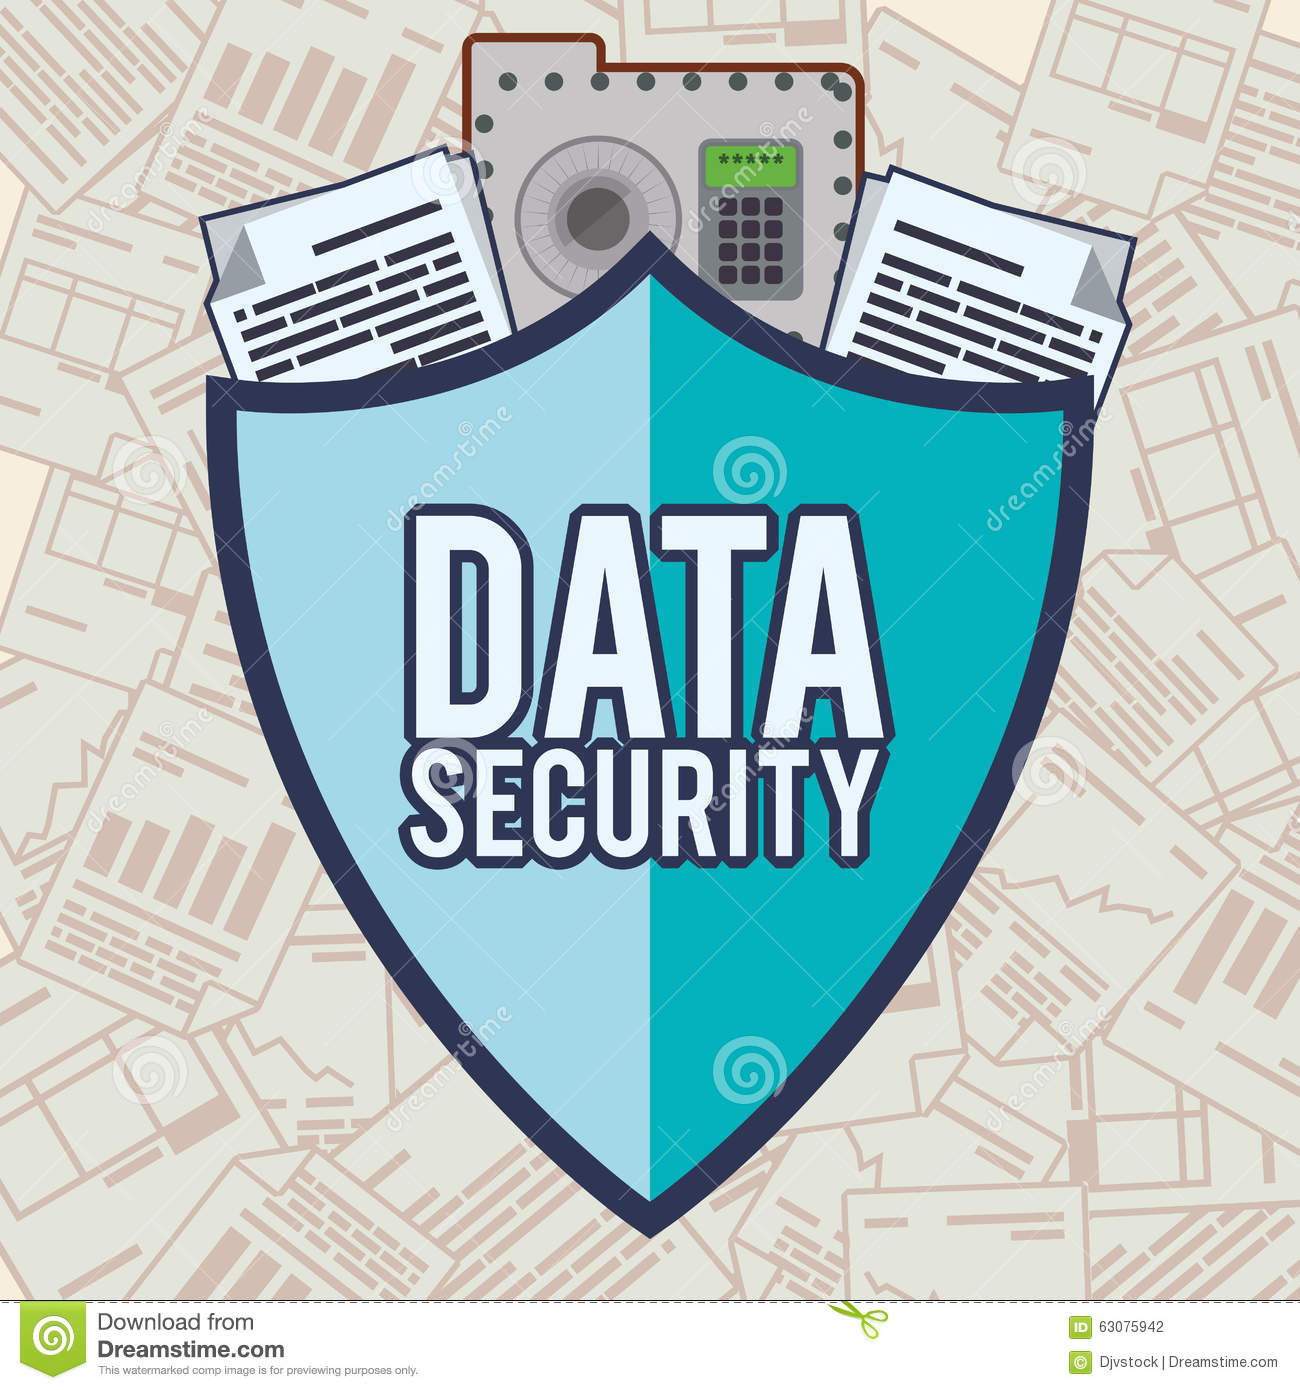 Database Security Design